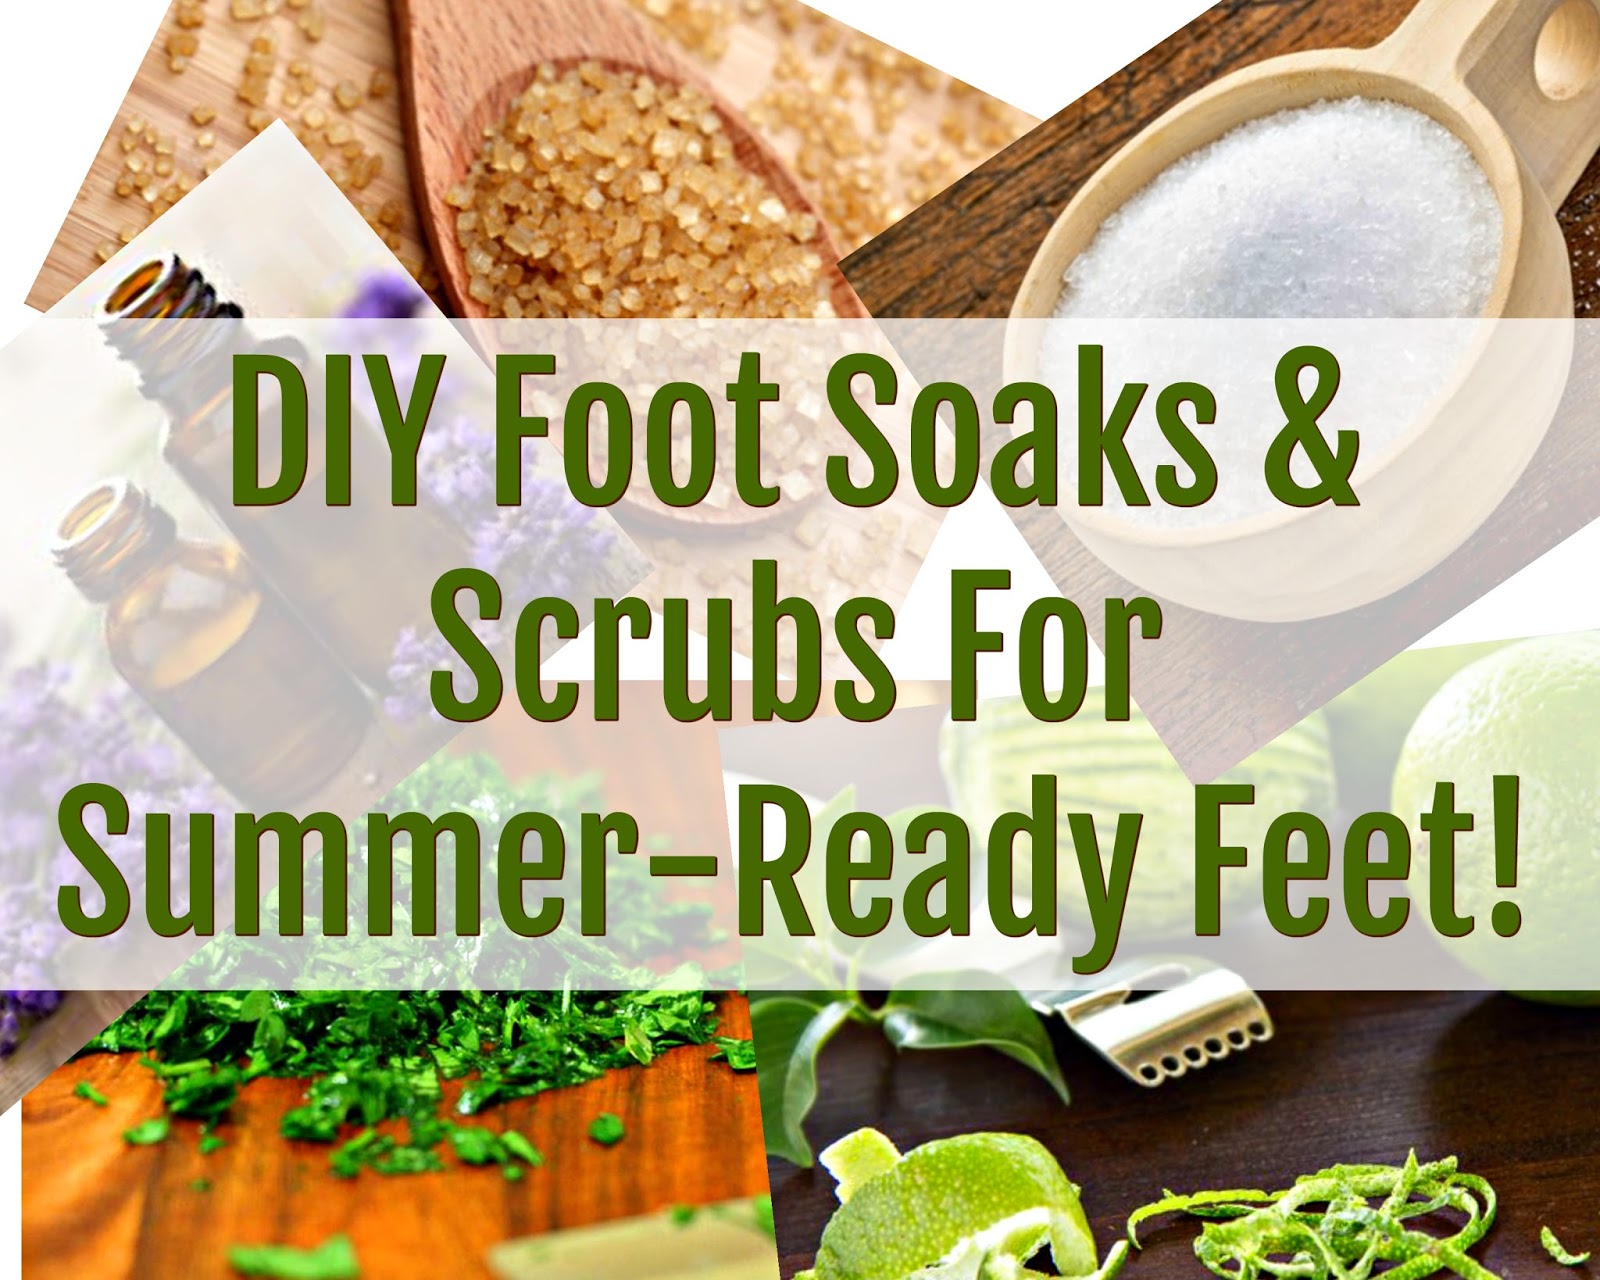 Pretty feet require a great foot soak or foot scrub and we've got the best DIY recipes to get your feet ready for summer!